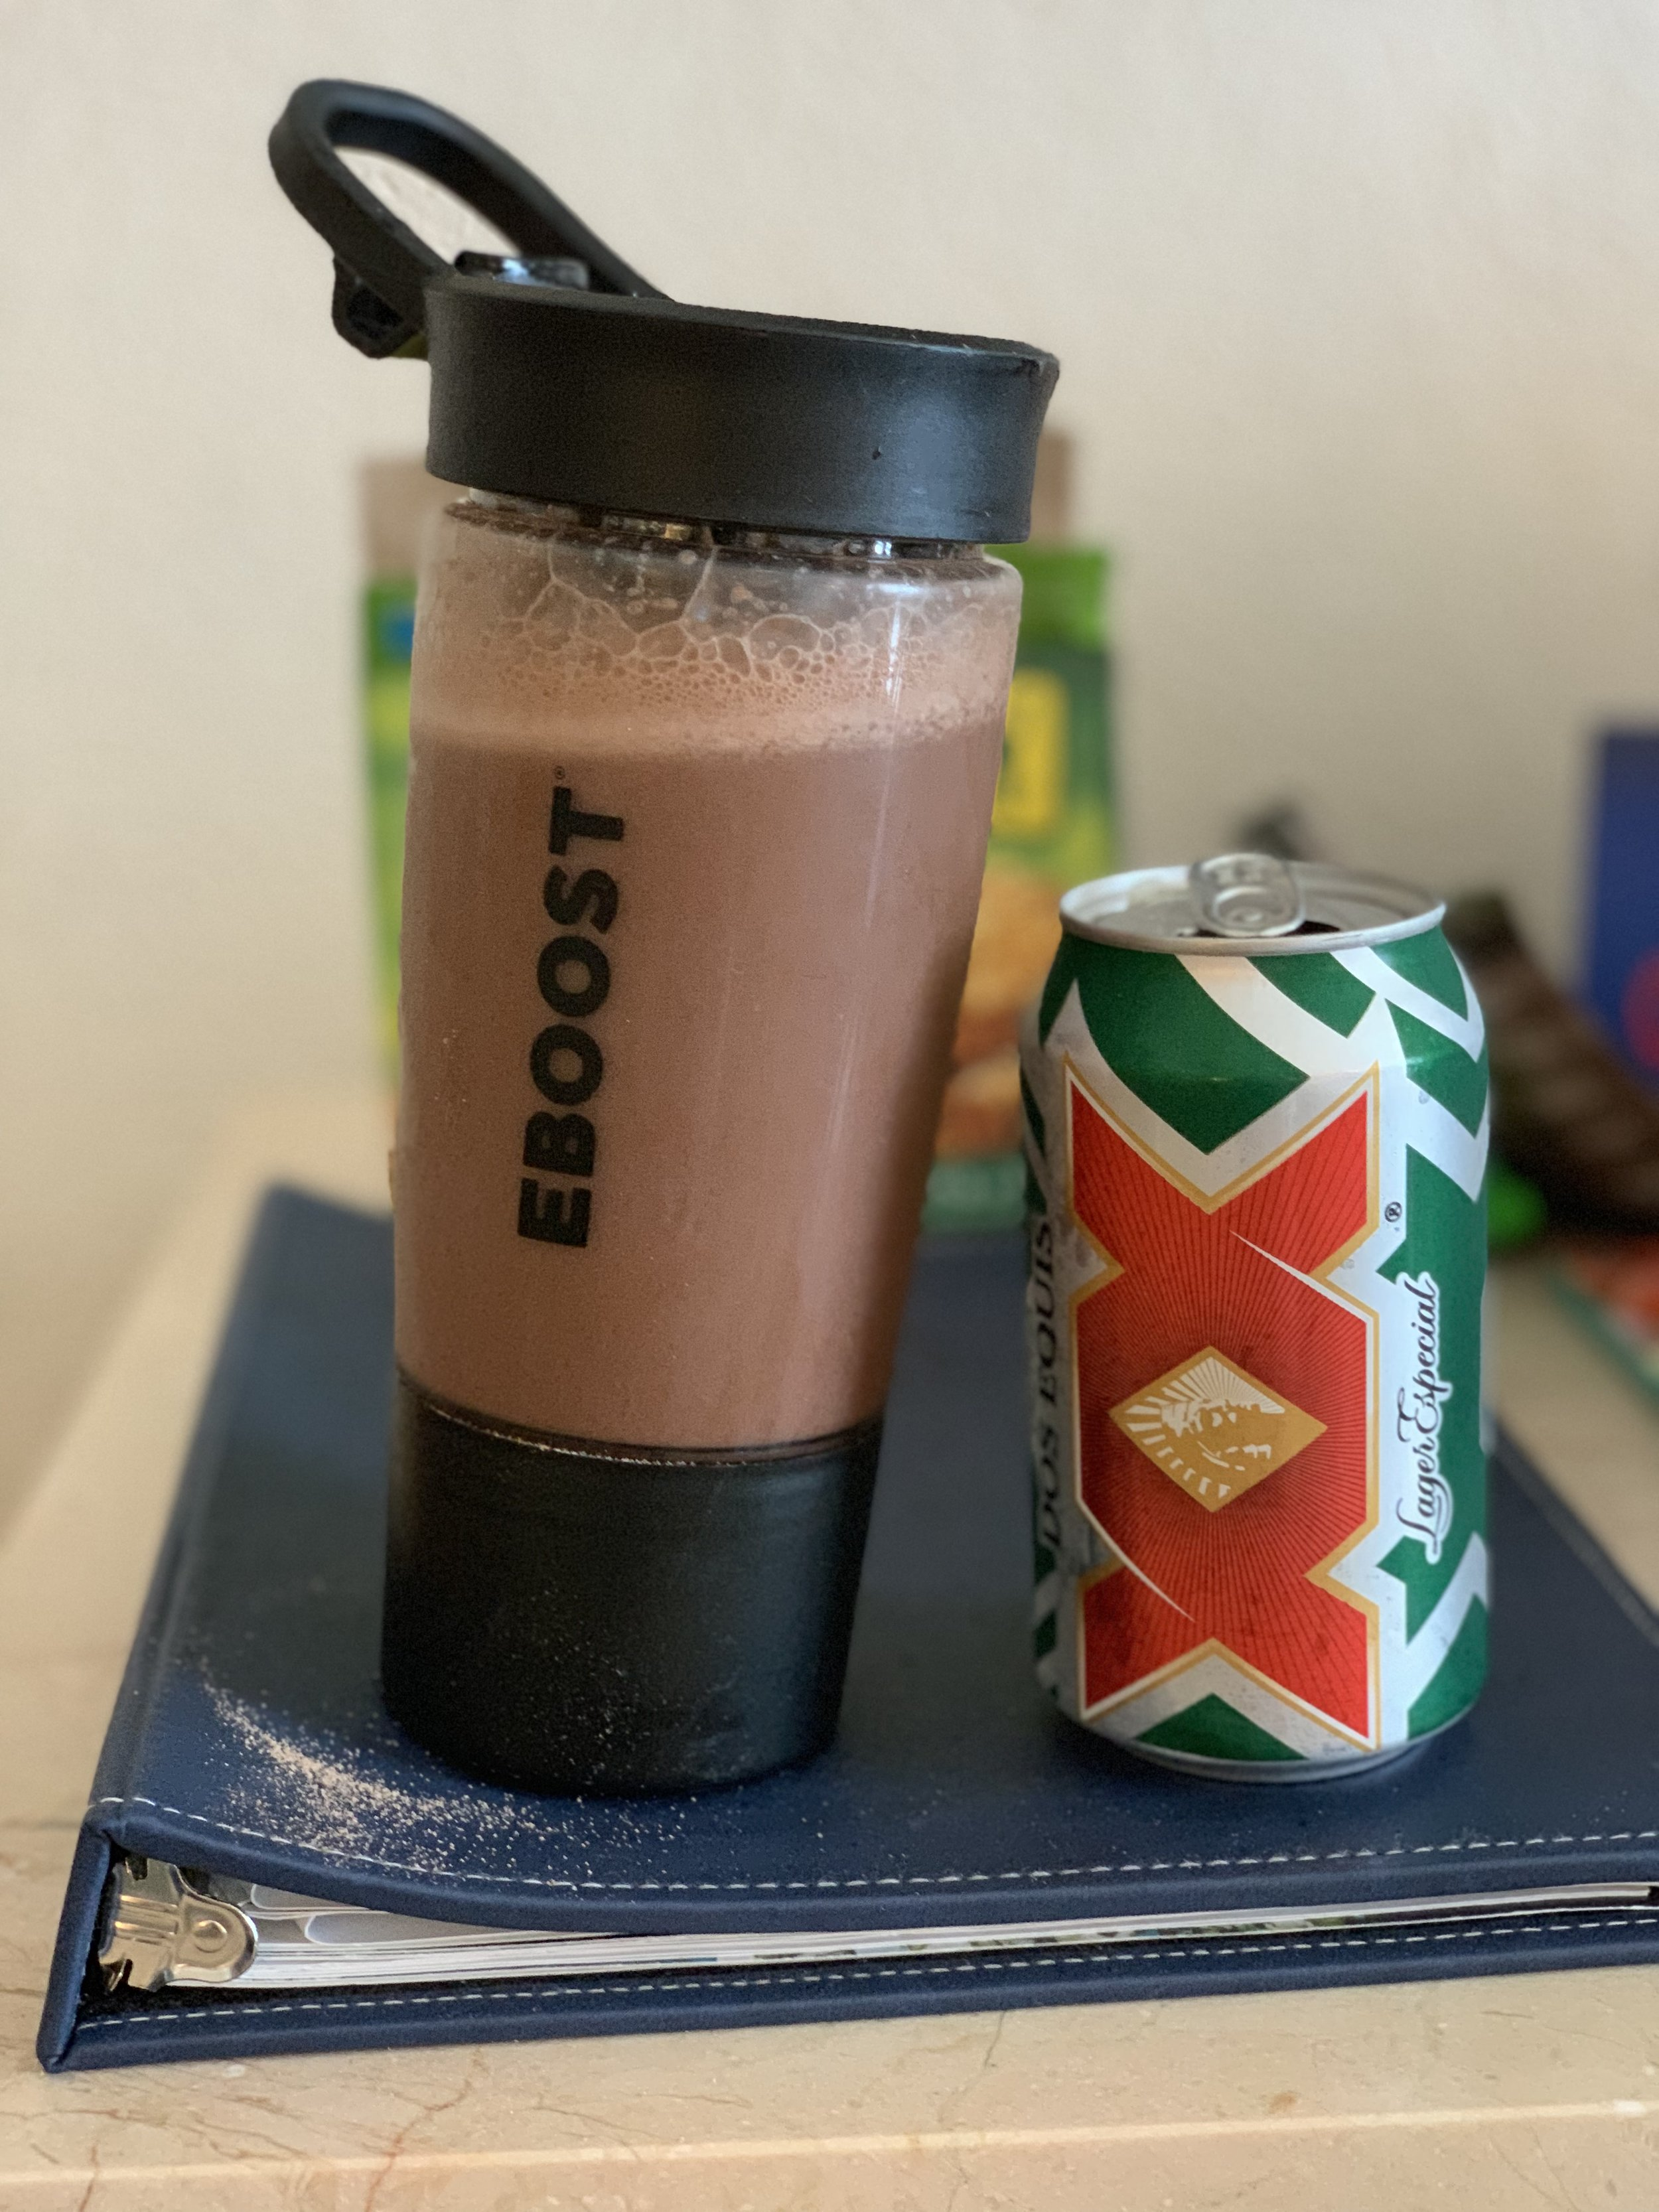 Following coach's orders:  EBoost Prime  recovery shake and booze. Not pictured: Poolside tequila shots and margaritas.